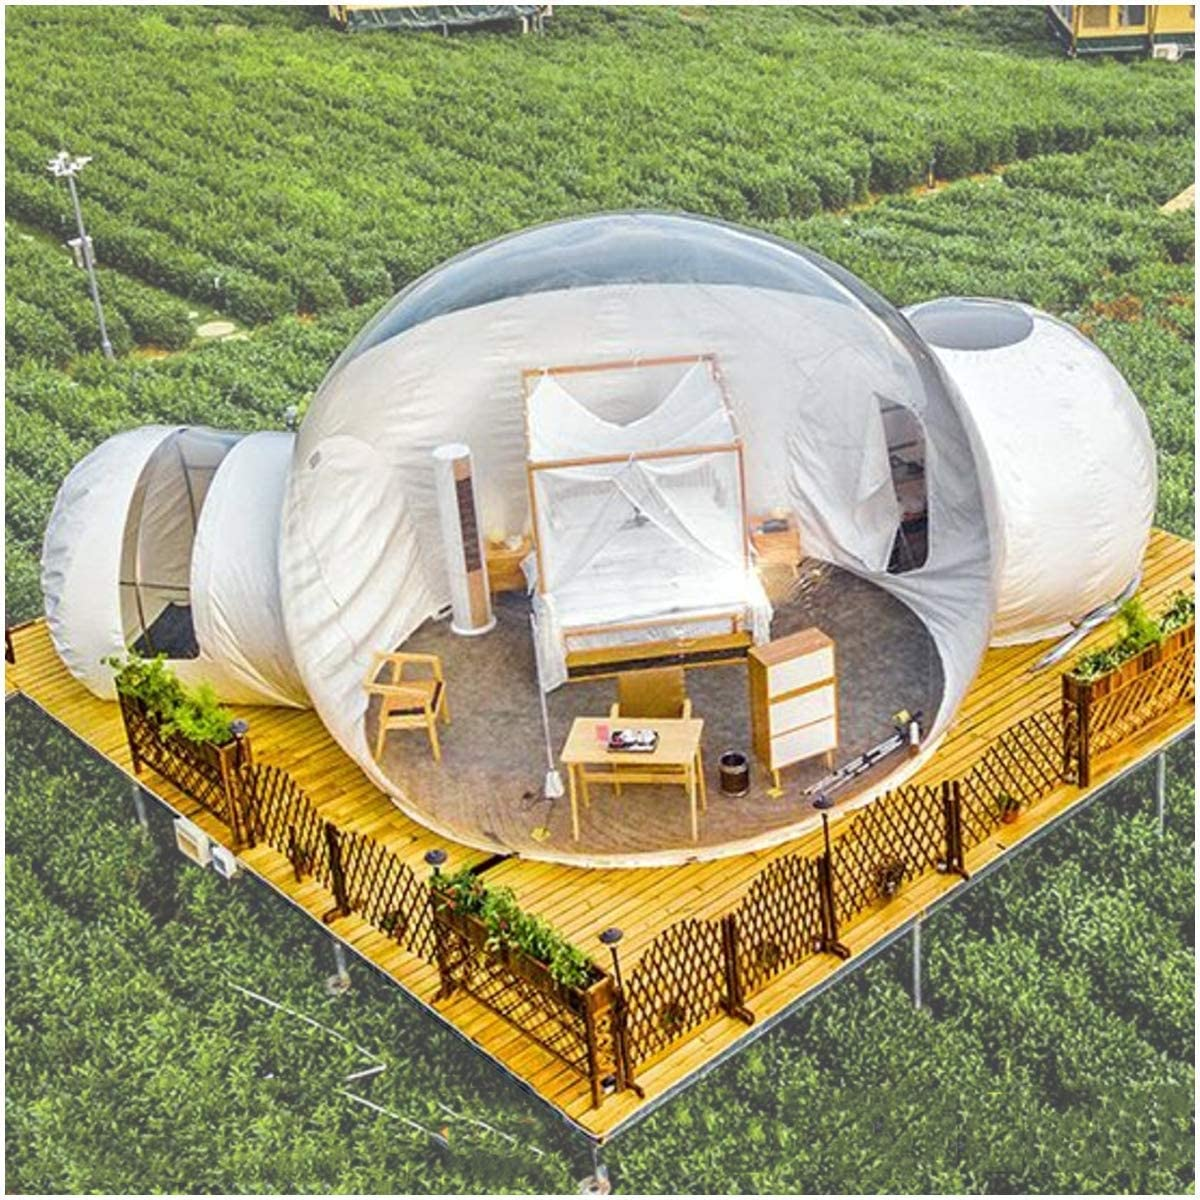 LFDHSF Family Camping Backyard Tent, Garden Igloo 360 Dome, Dual Tunnel Outdoor Luxurious Transparent Inflatable Bubble Tent